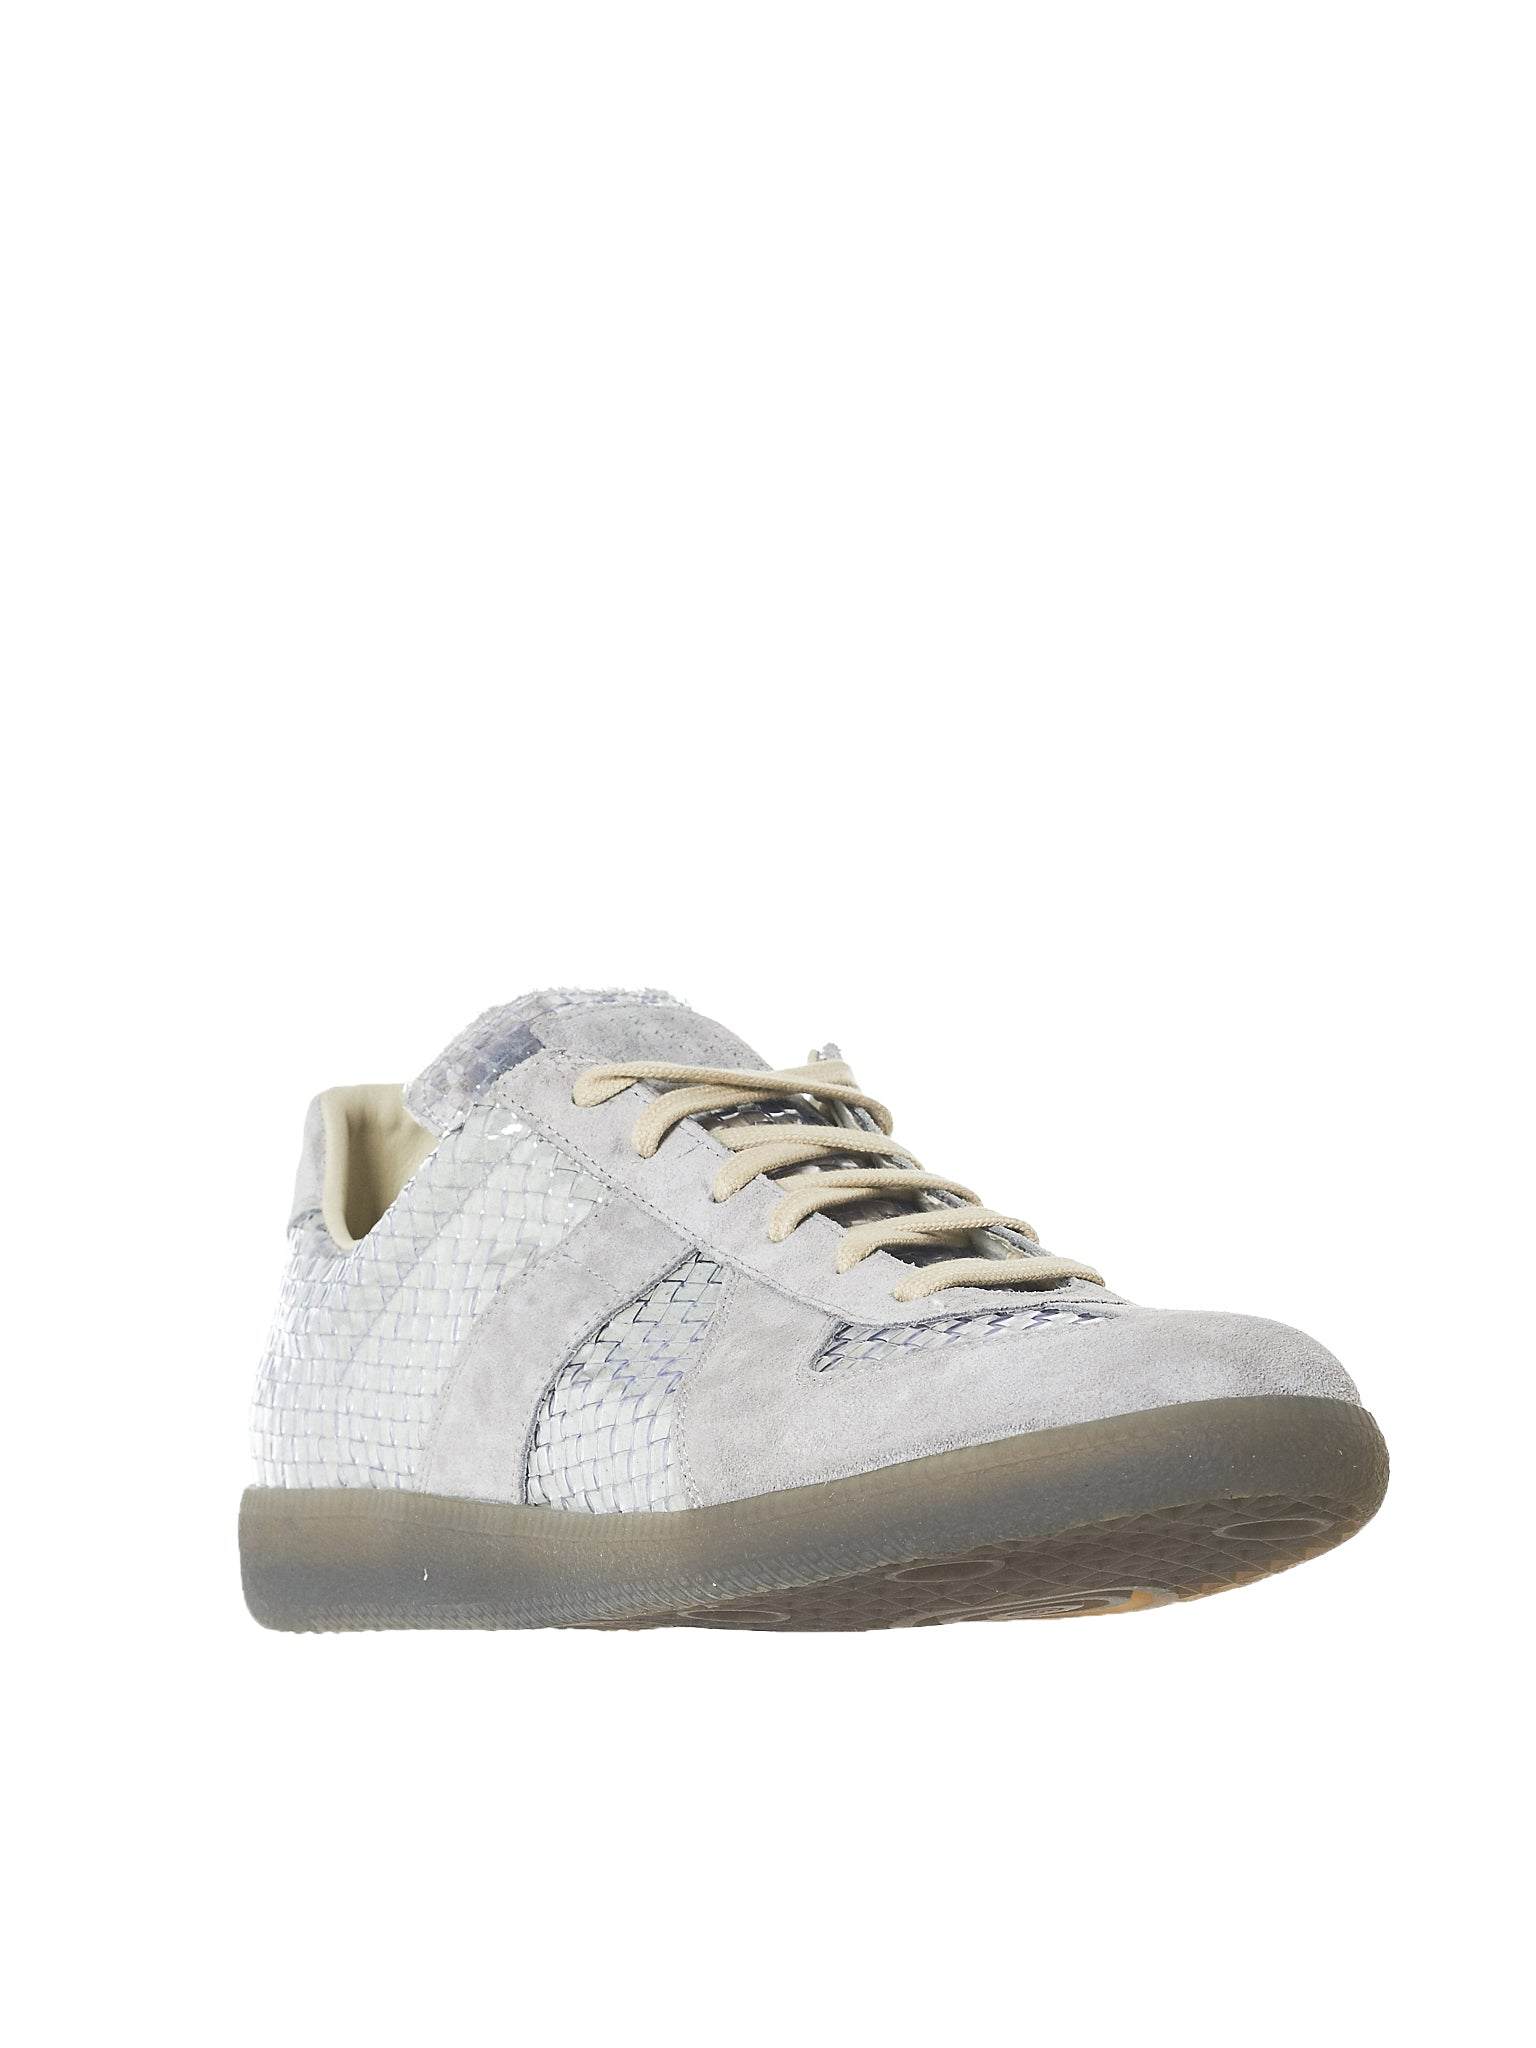 Maison Margiela Replica Sneakers - Hlorenzo Side